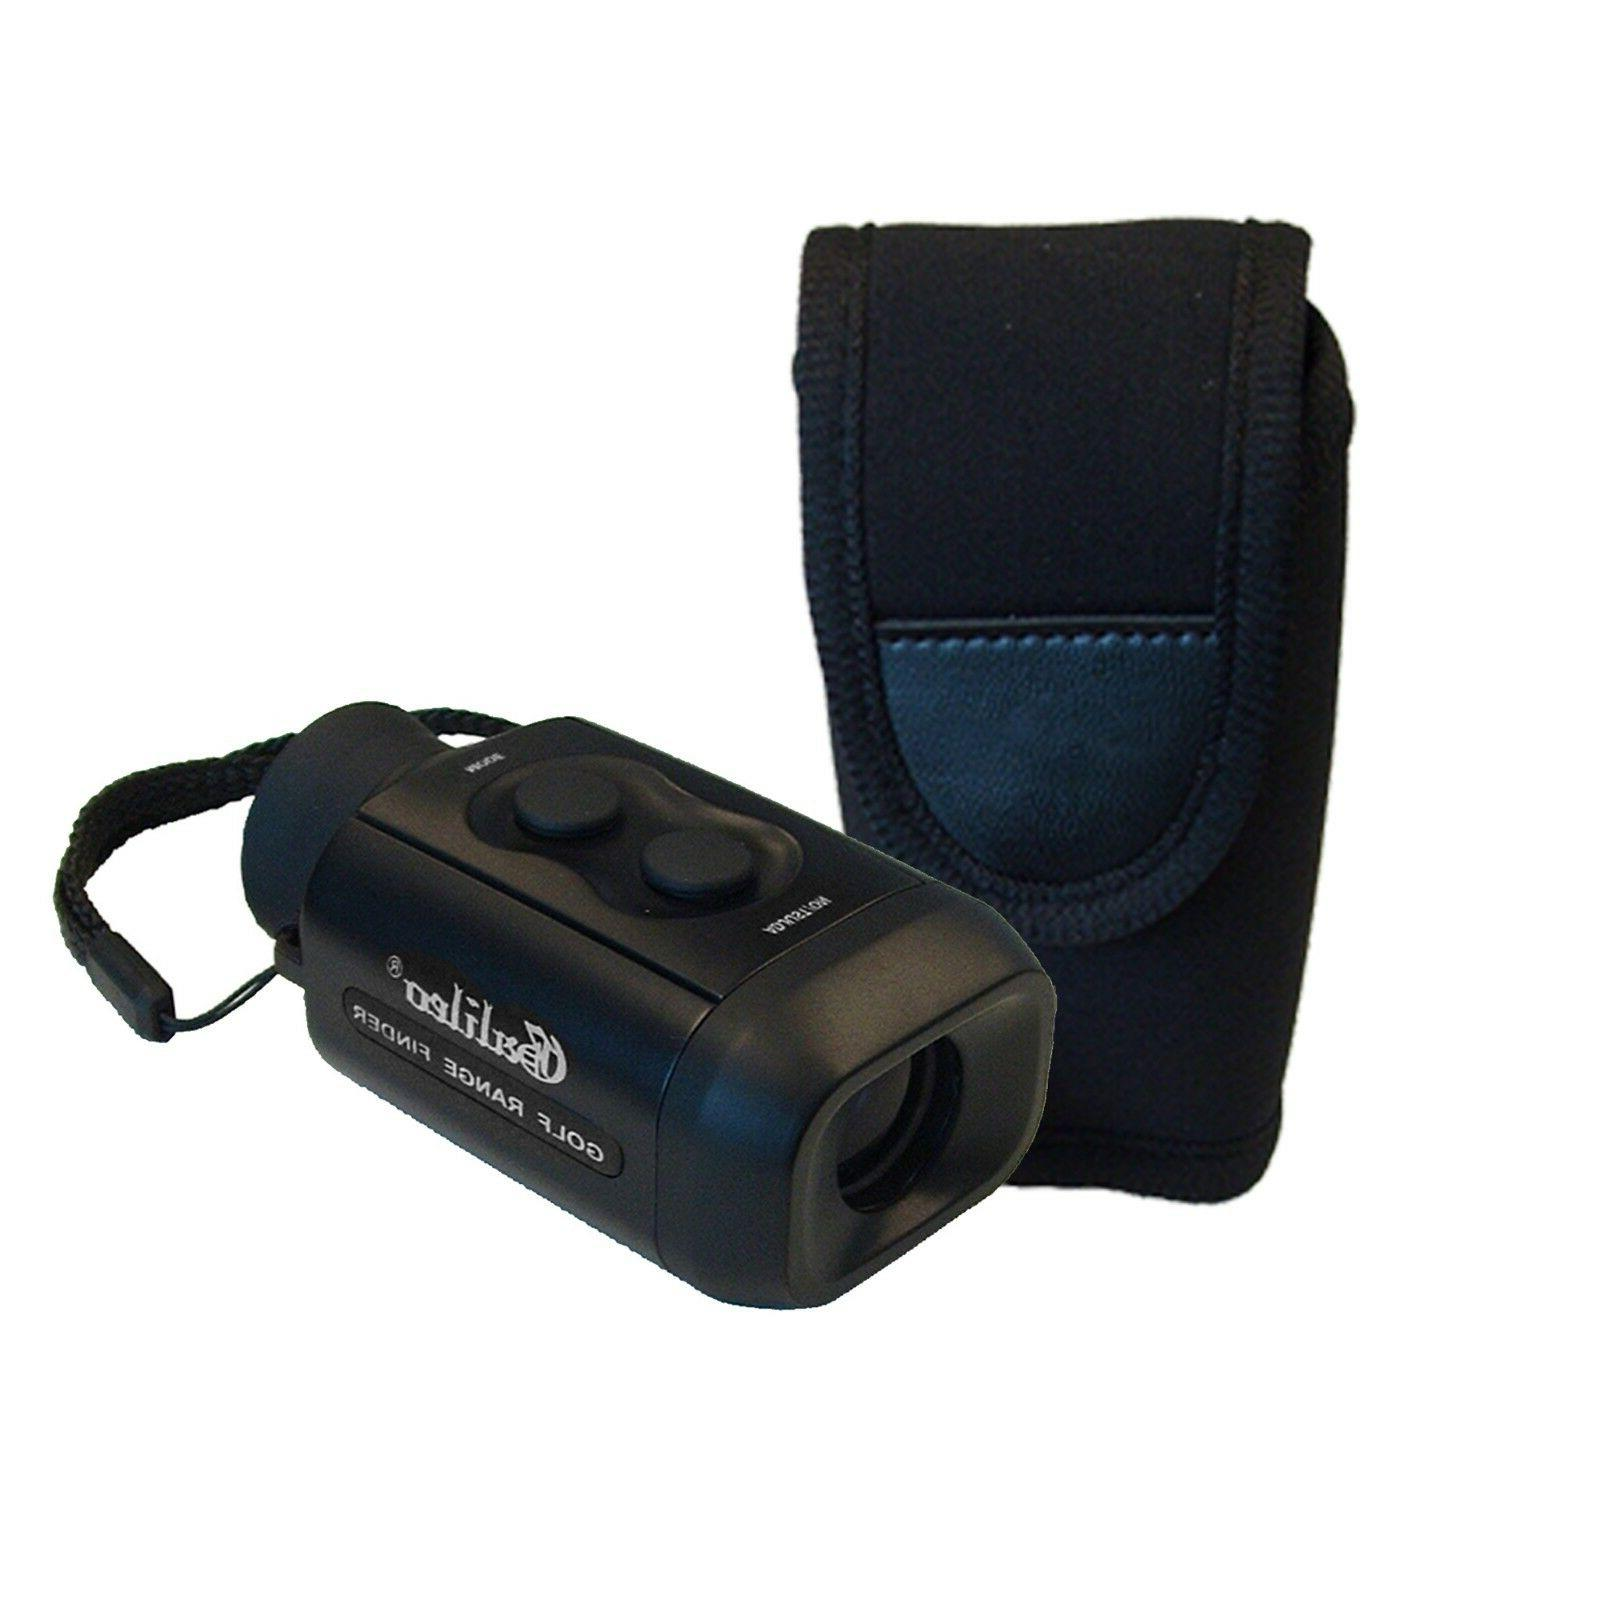 golf scope range finder distance outdoor electronic